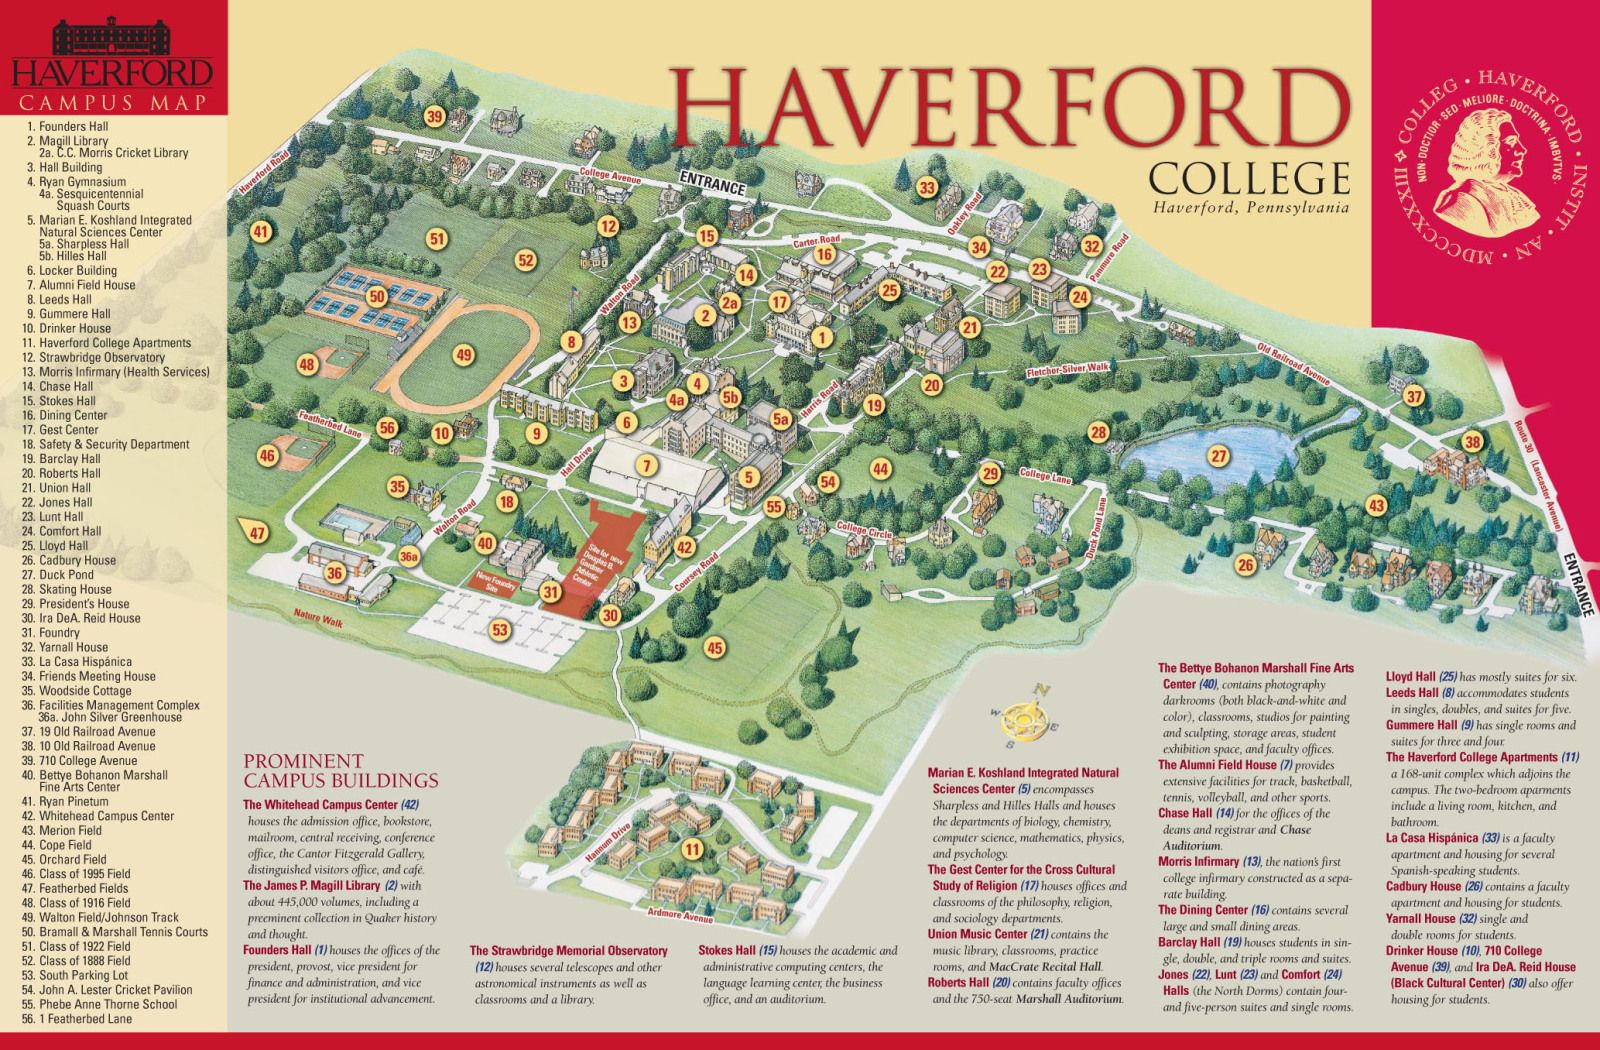 haverford college campus map Haverford Campus Map Campus Map Map Delaware Valley haverford college campus map